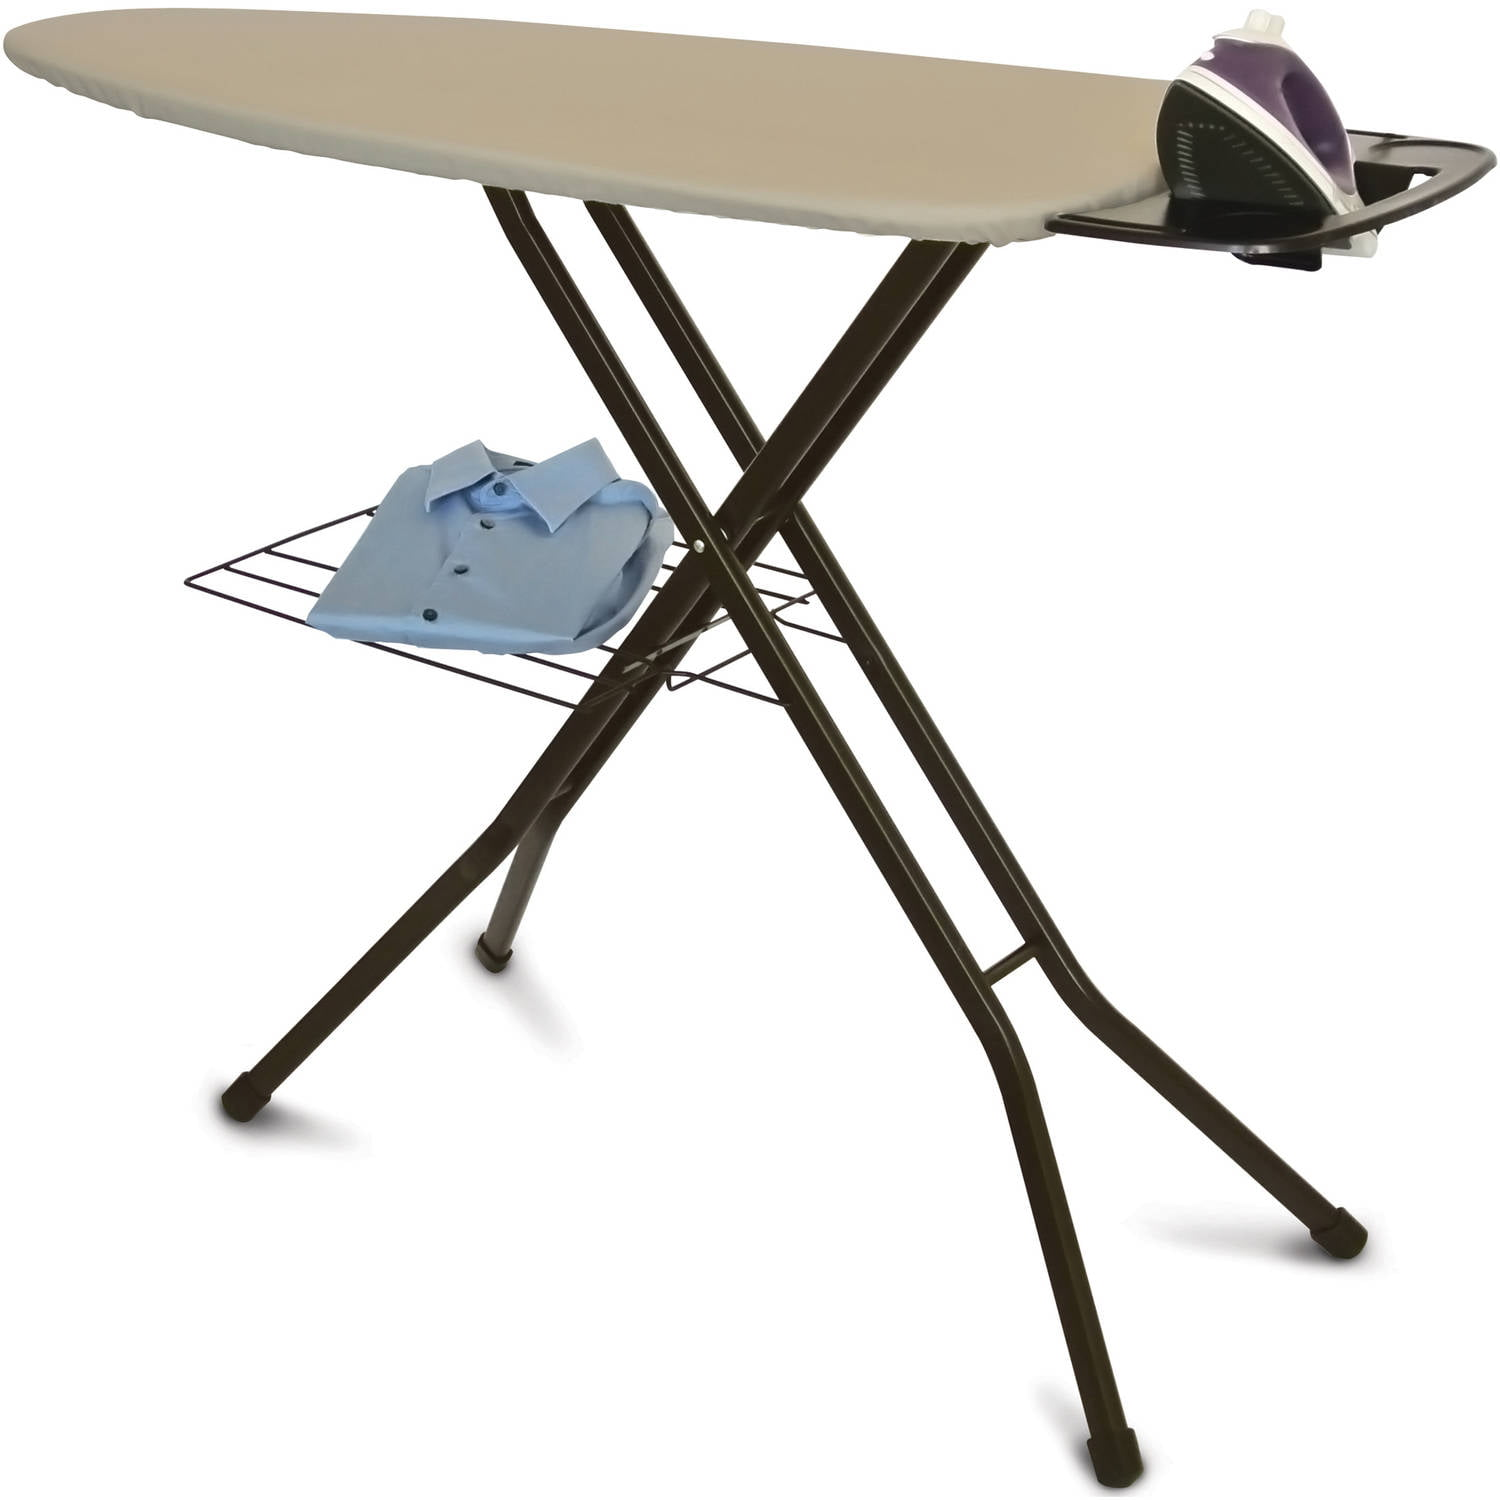 Better Homes and Gardens Wide Top Ironing Board, Khaki by Home Products International